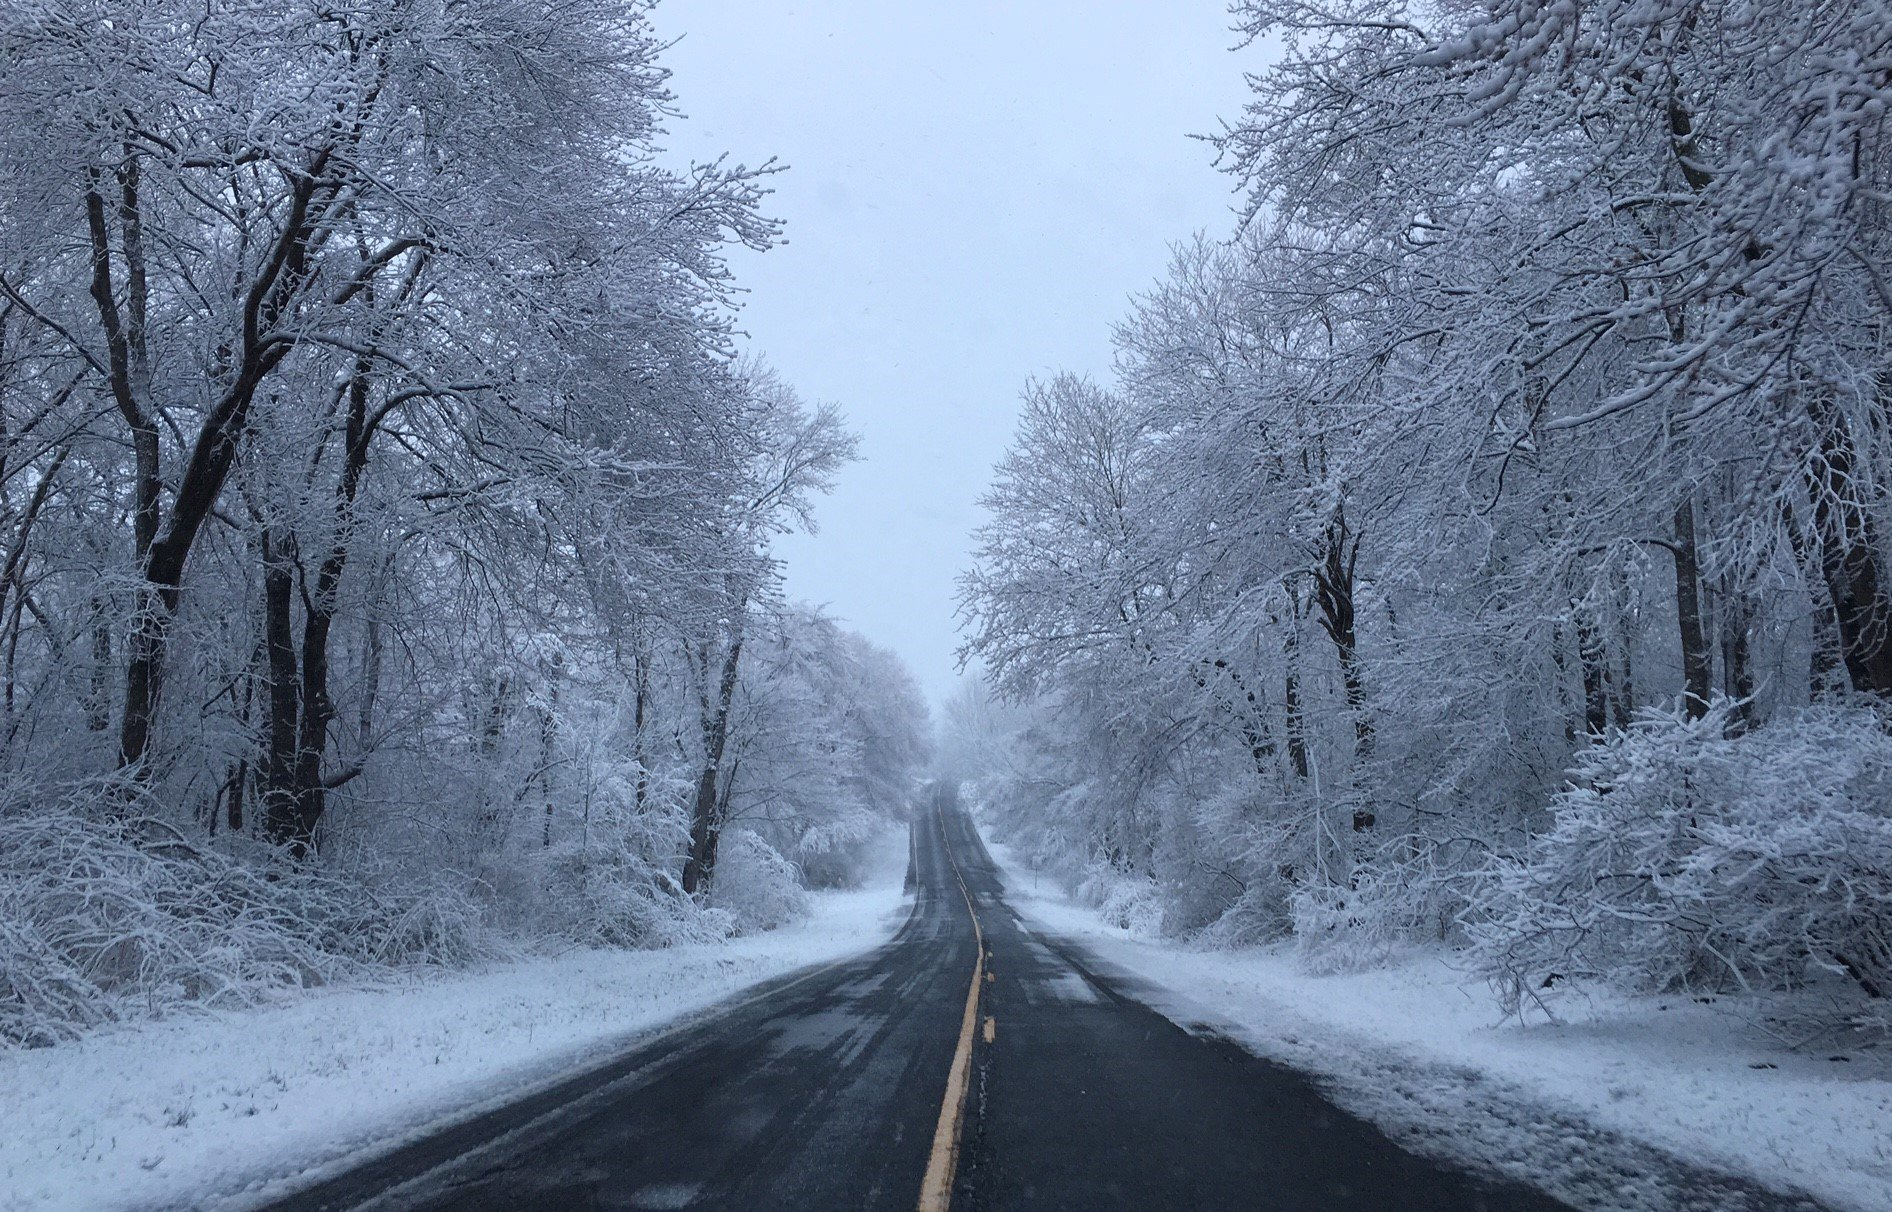 Route 67 in Roxbury at 7 a.m. (iwitness)